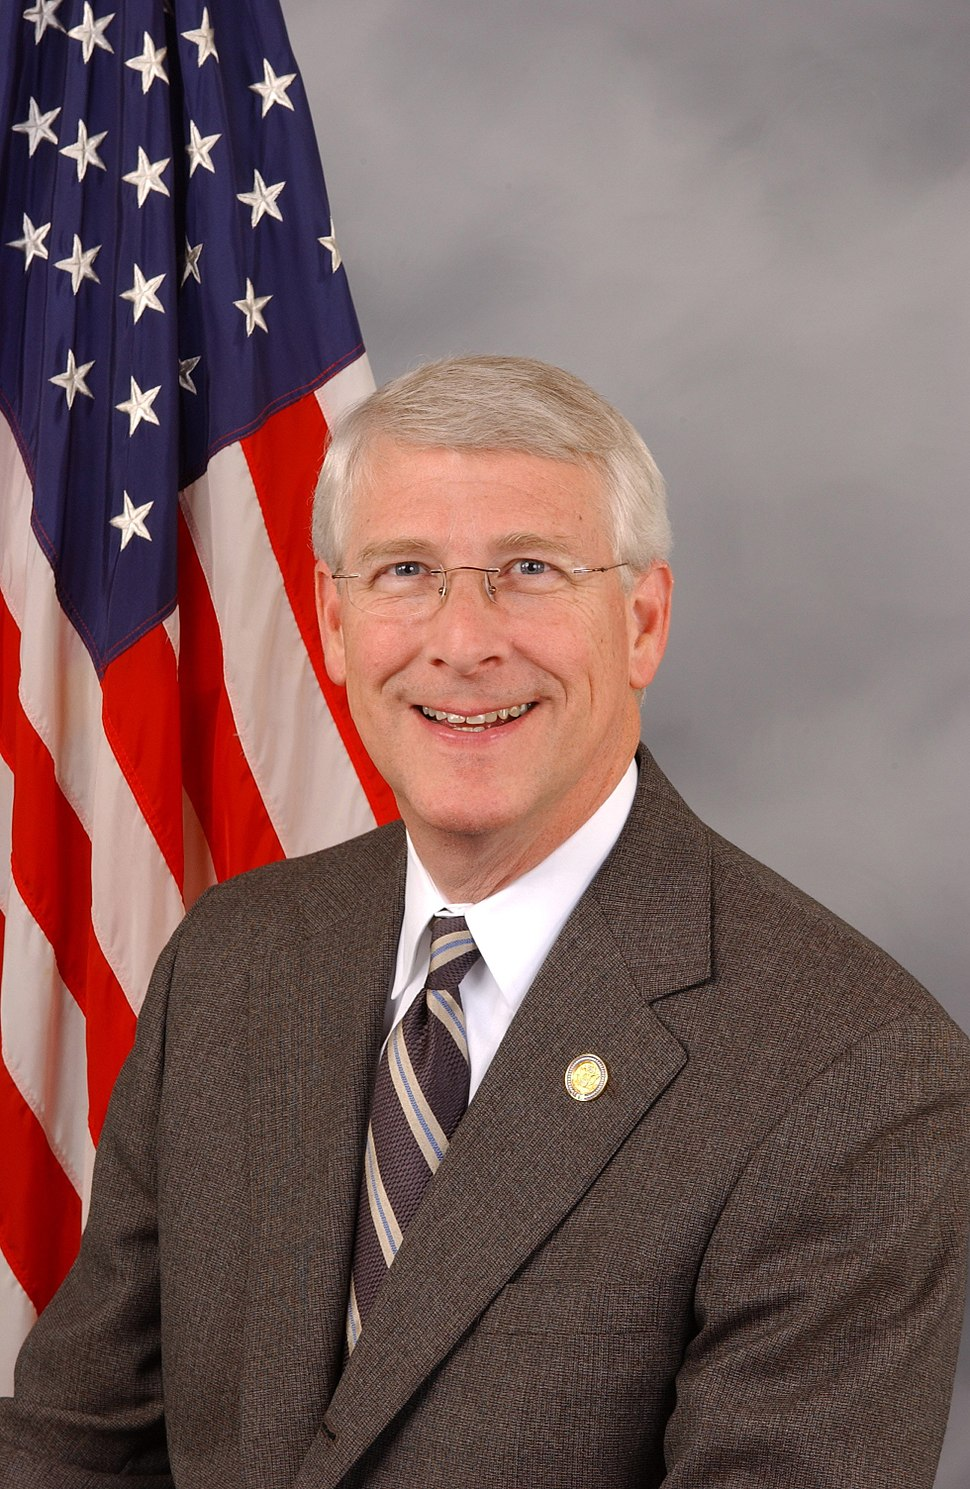 Roger Wicker, official Congressional photo portrait